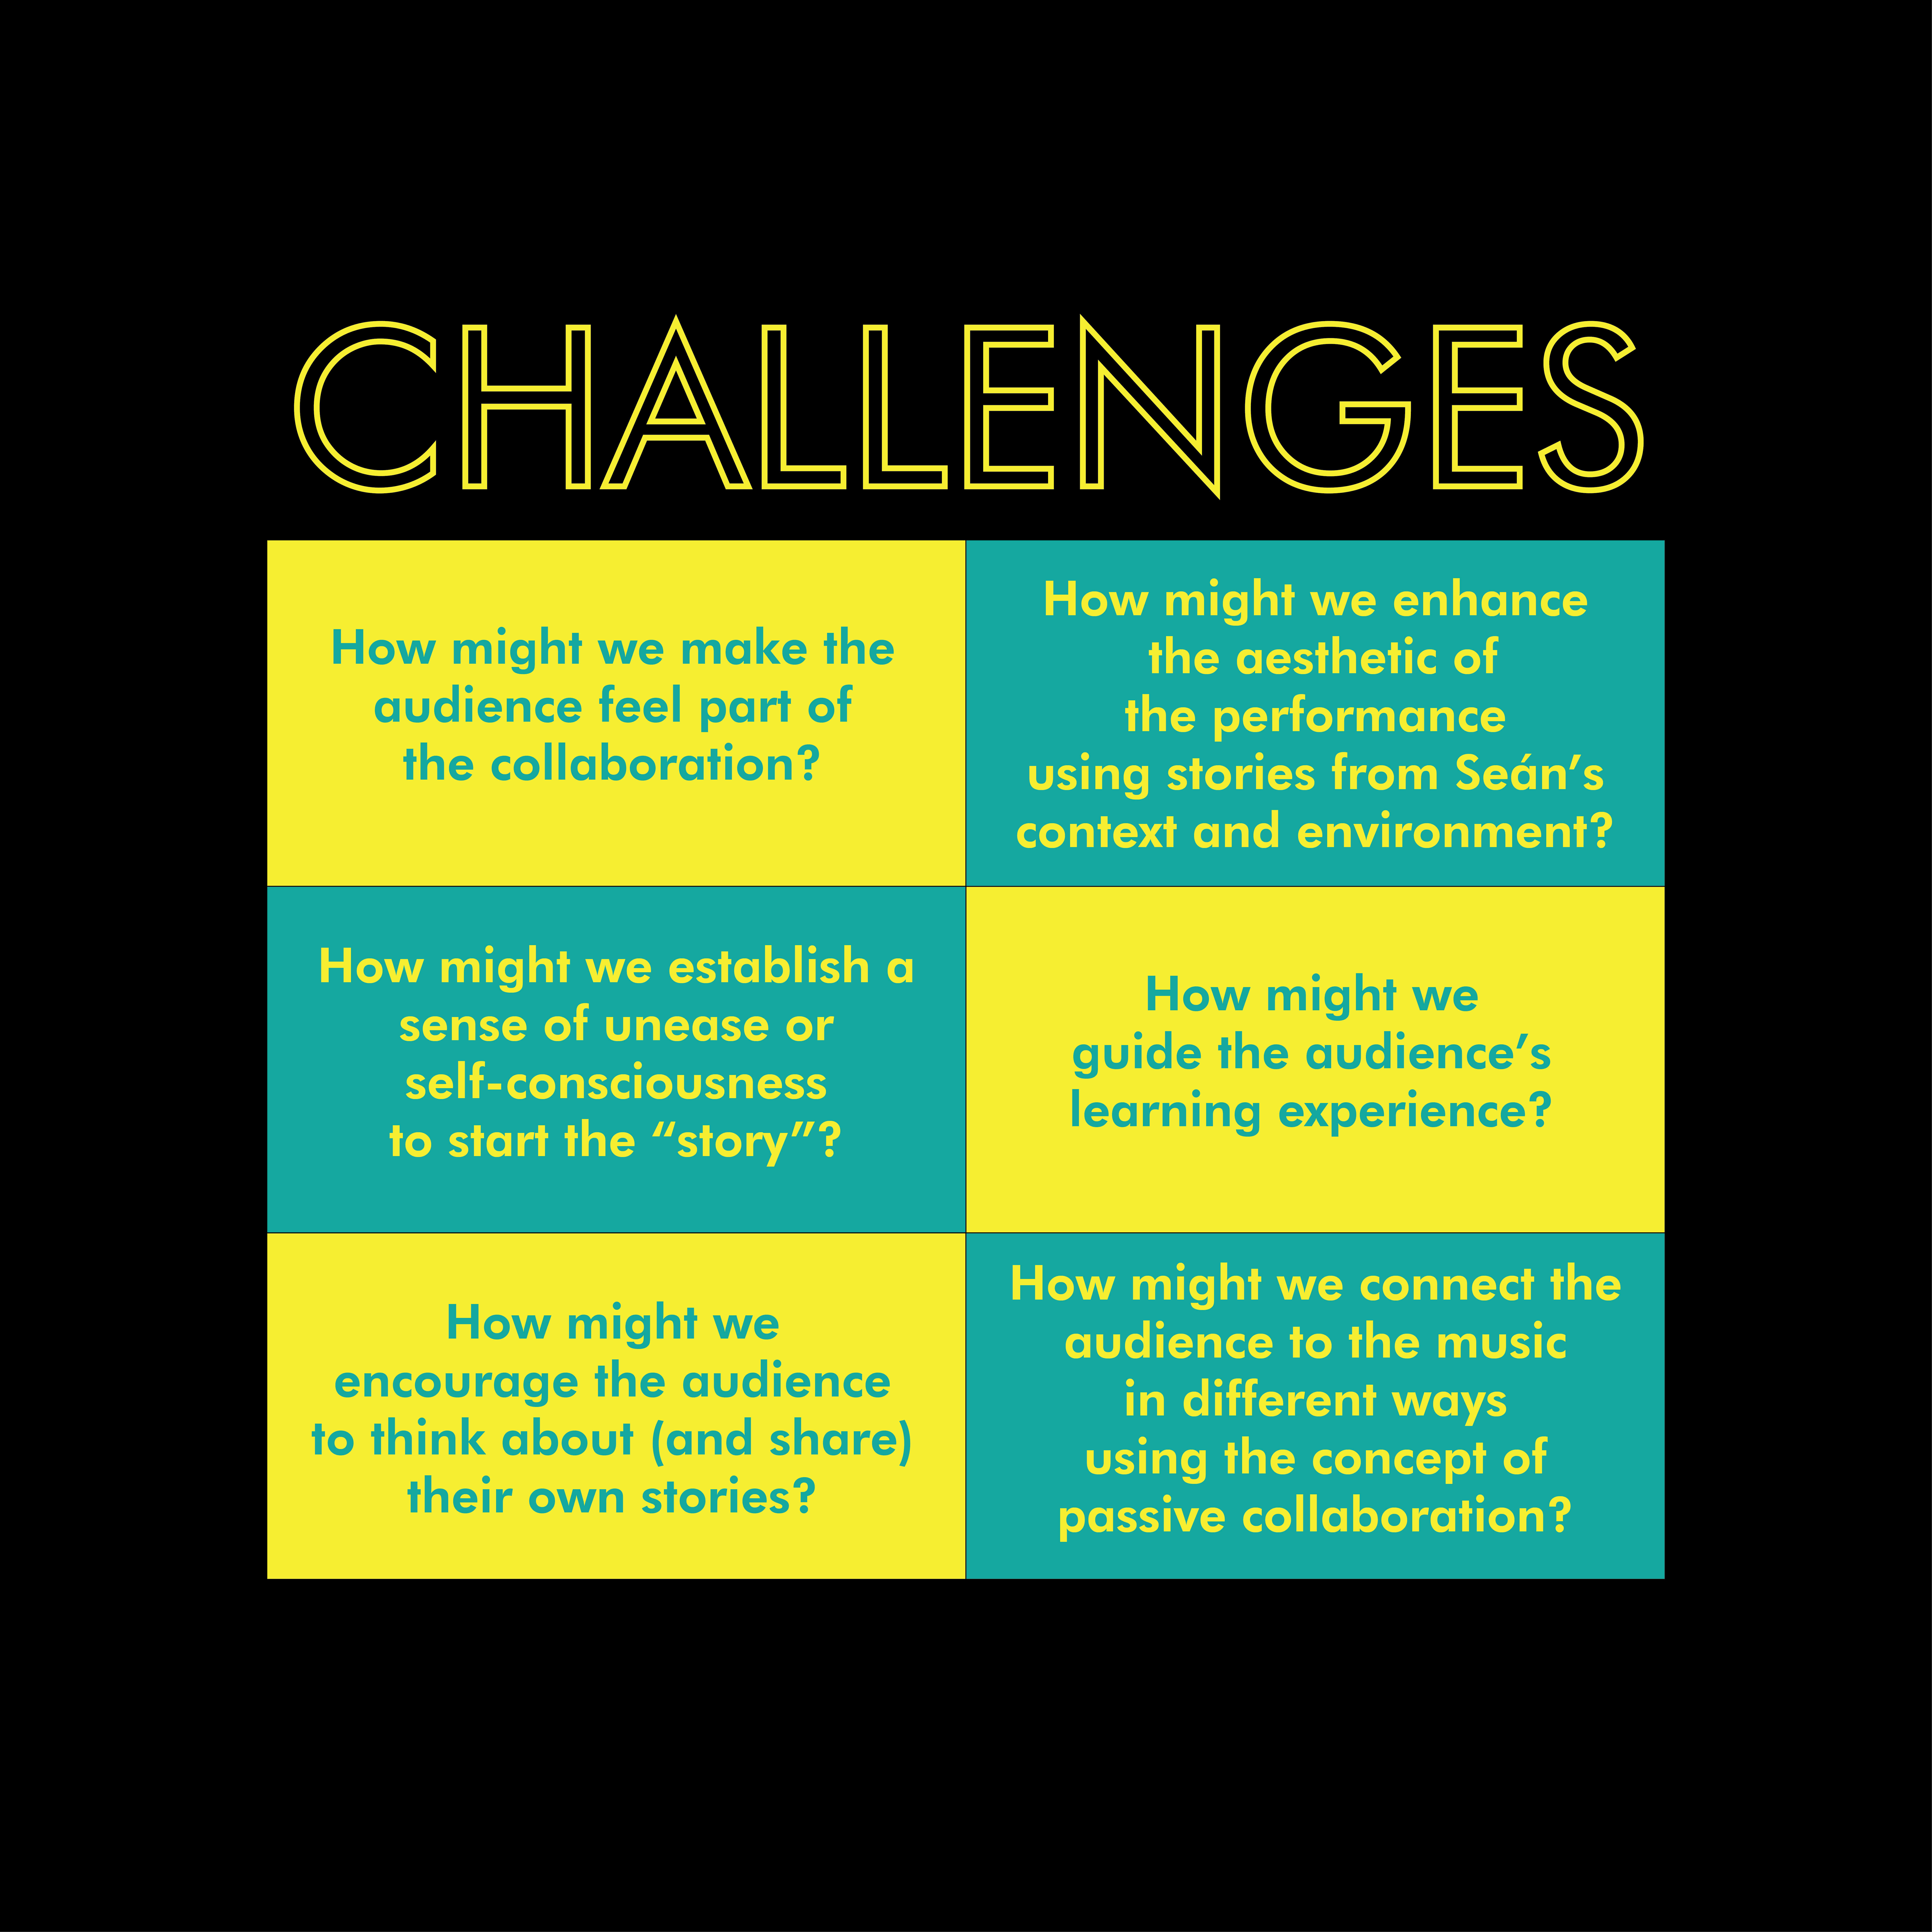 Ambitiously framing some challenges.